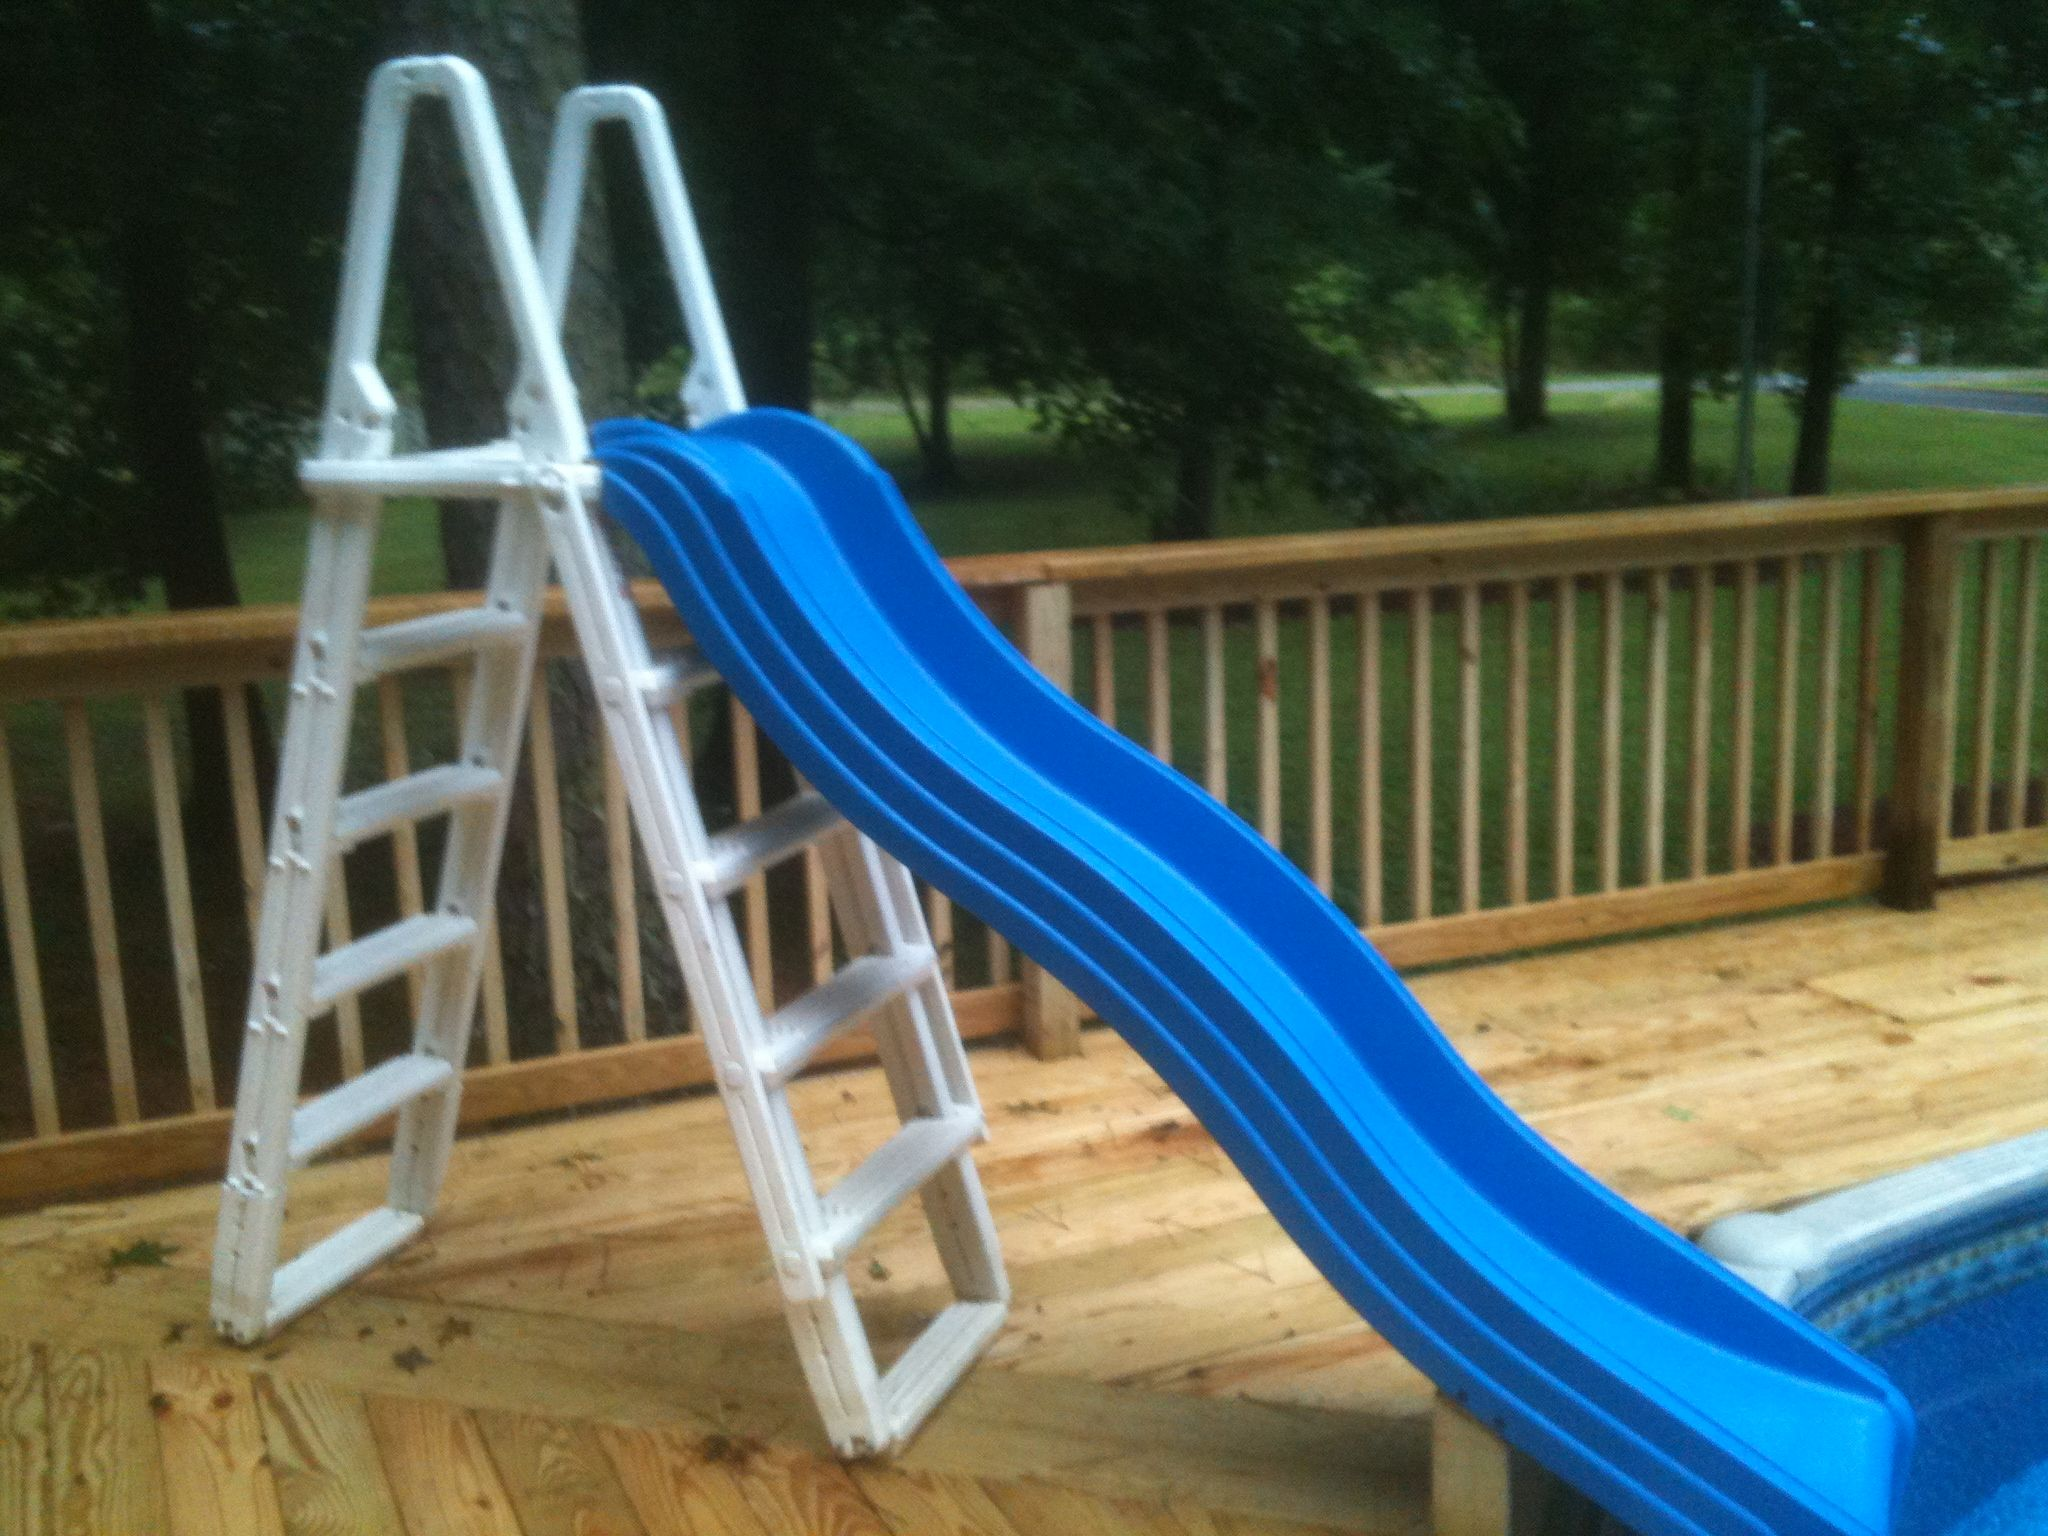 Jacuzzi Pool Ladder I Did This Over The Weekend. My Wife Found The Slide At A